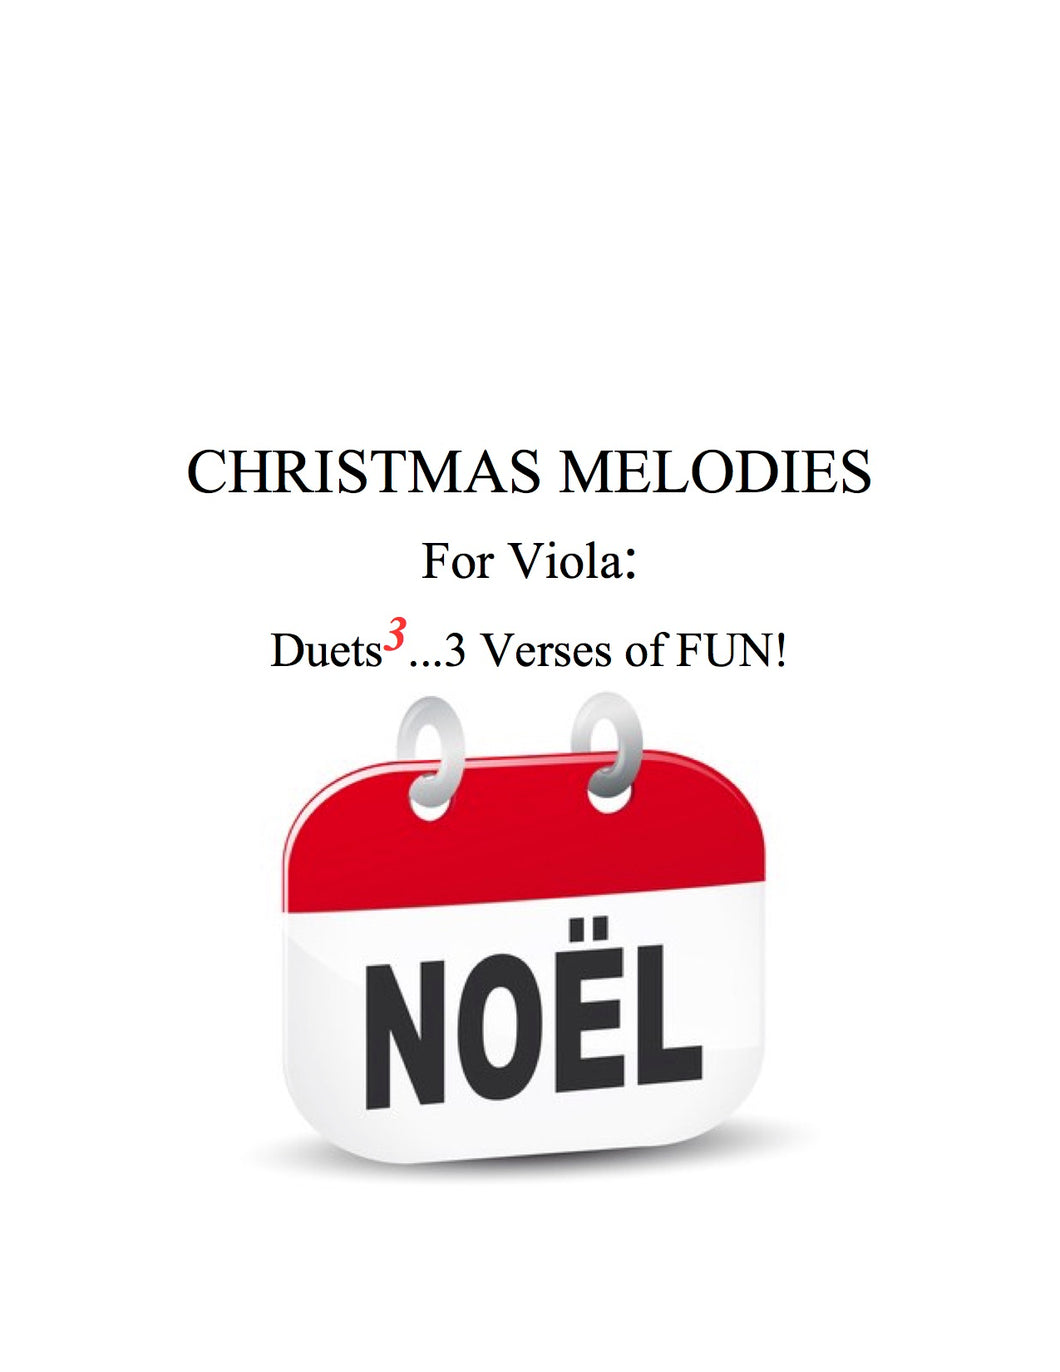 040 - Christmas Melodies For Viola: Duets to the 3rd Power...3 Verses of FUN!